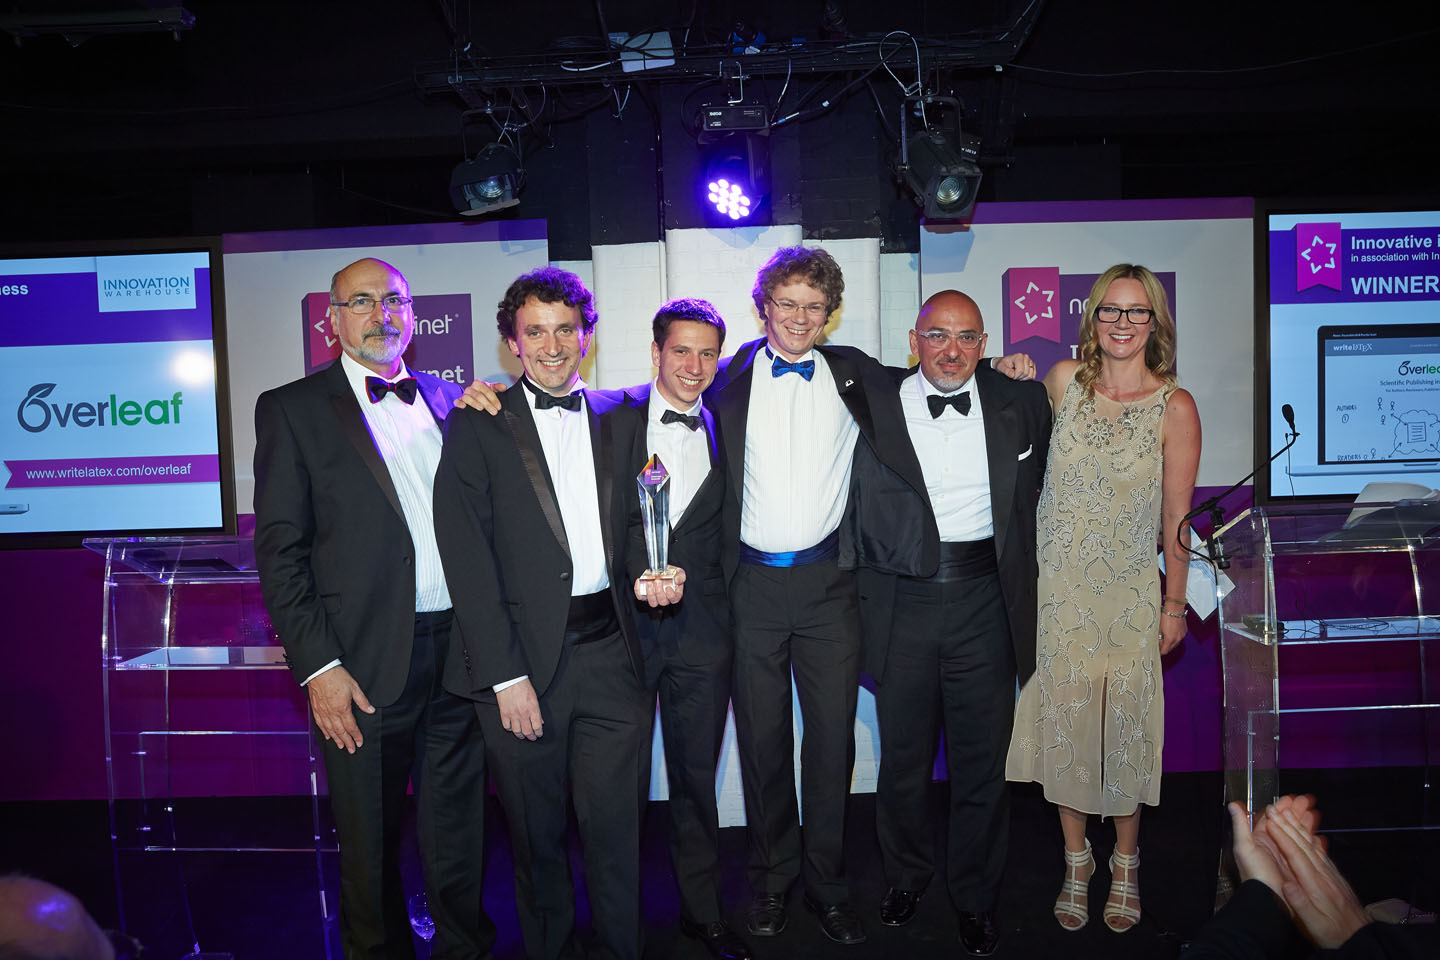 Nominet Internet Awards 2014 winners writeLaTeX Overleaf official photo